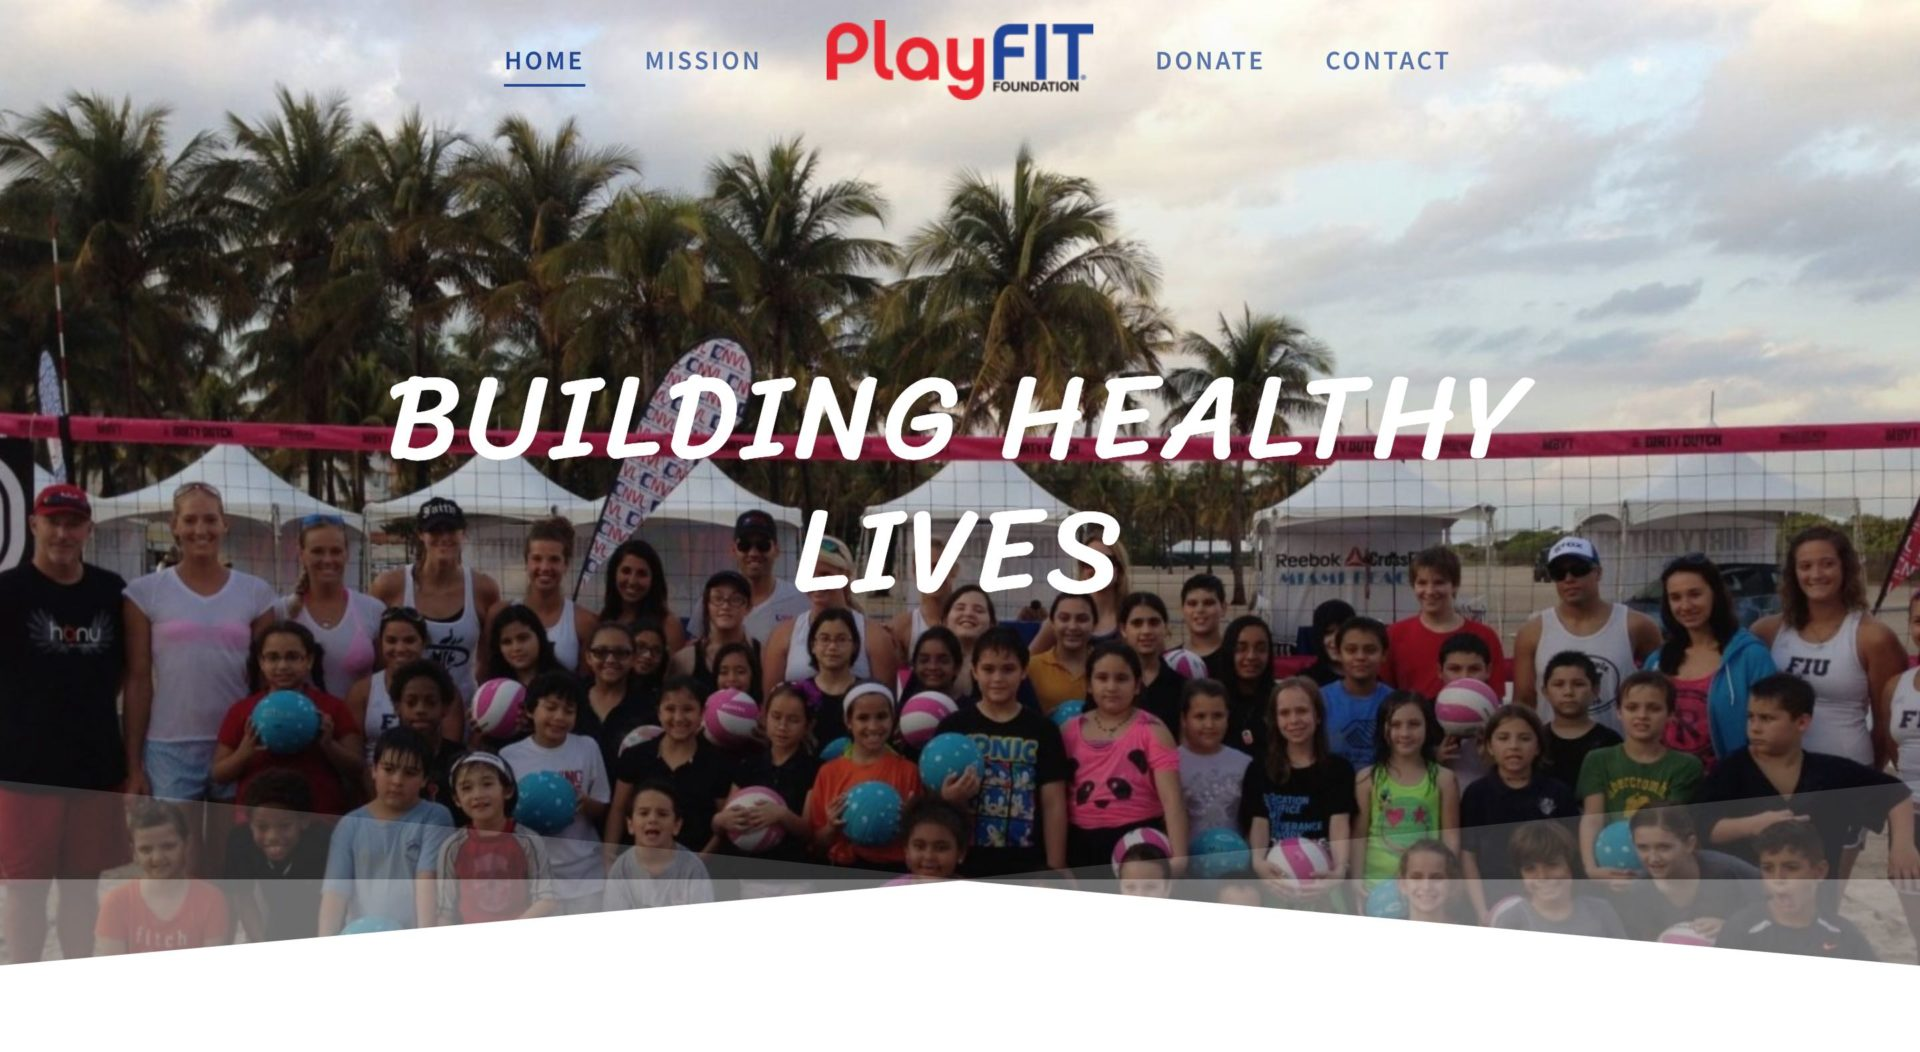 PlayFit Foundation